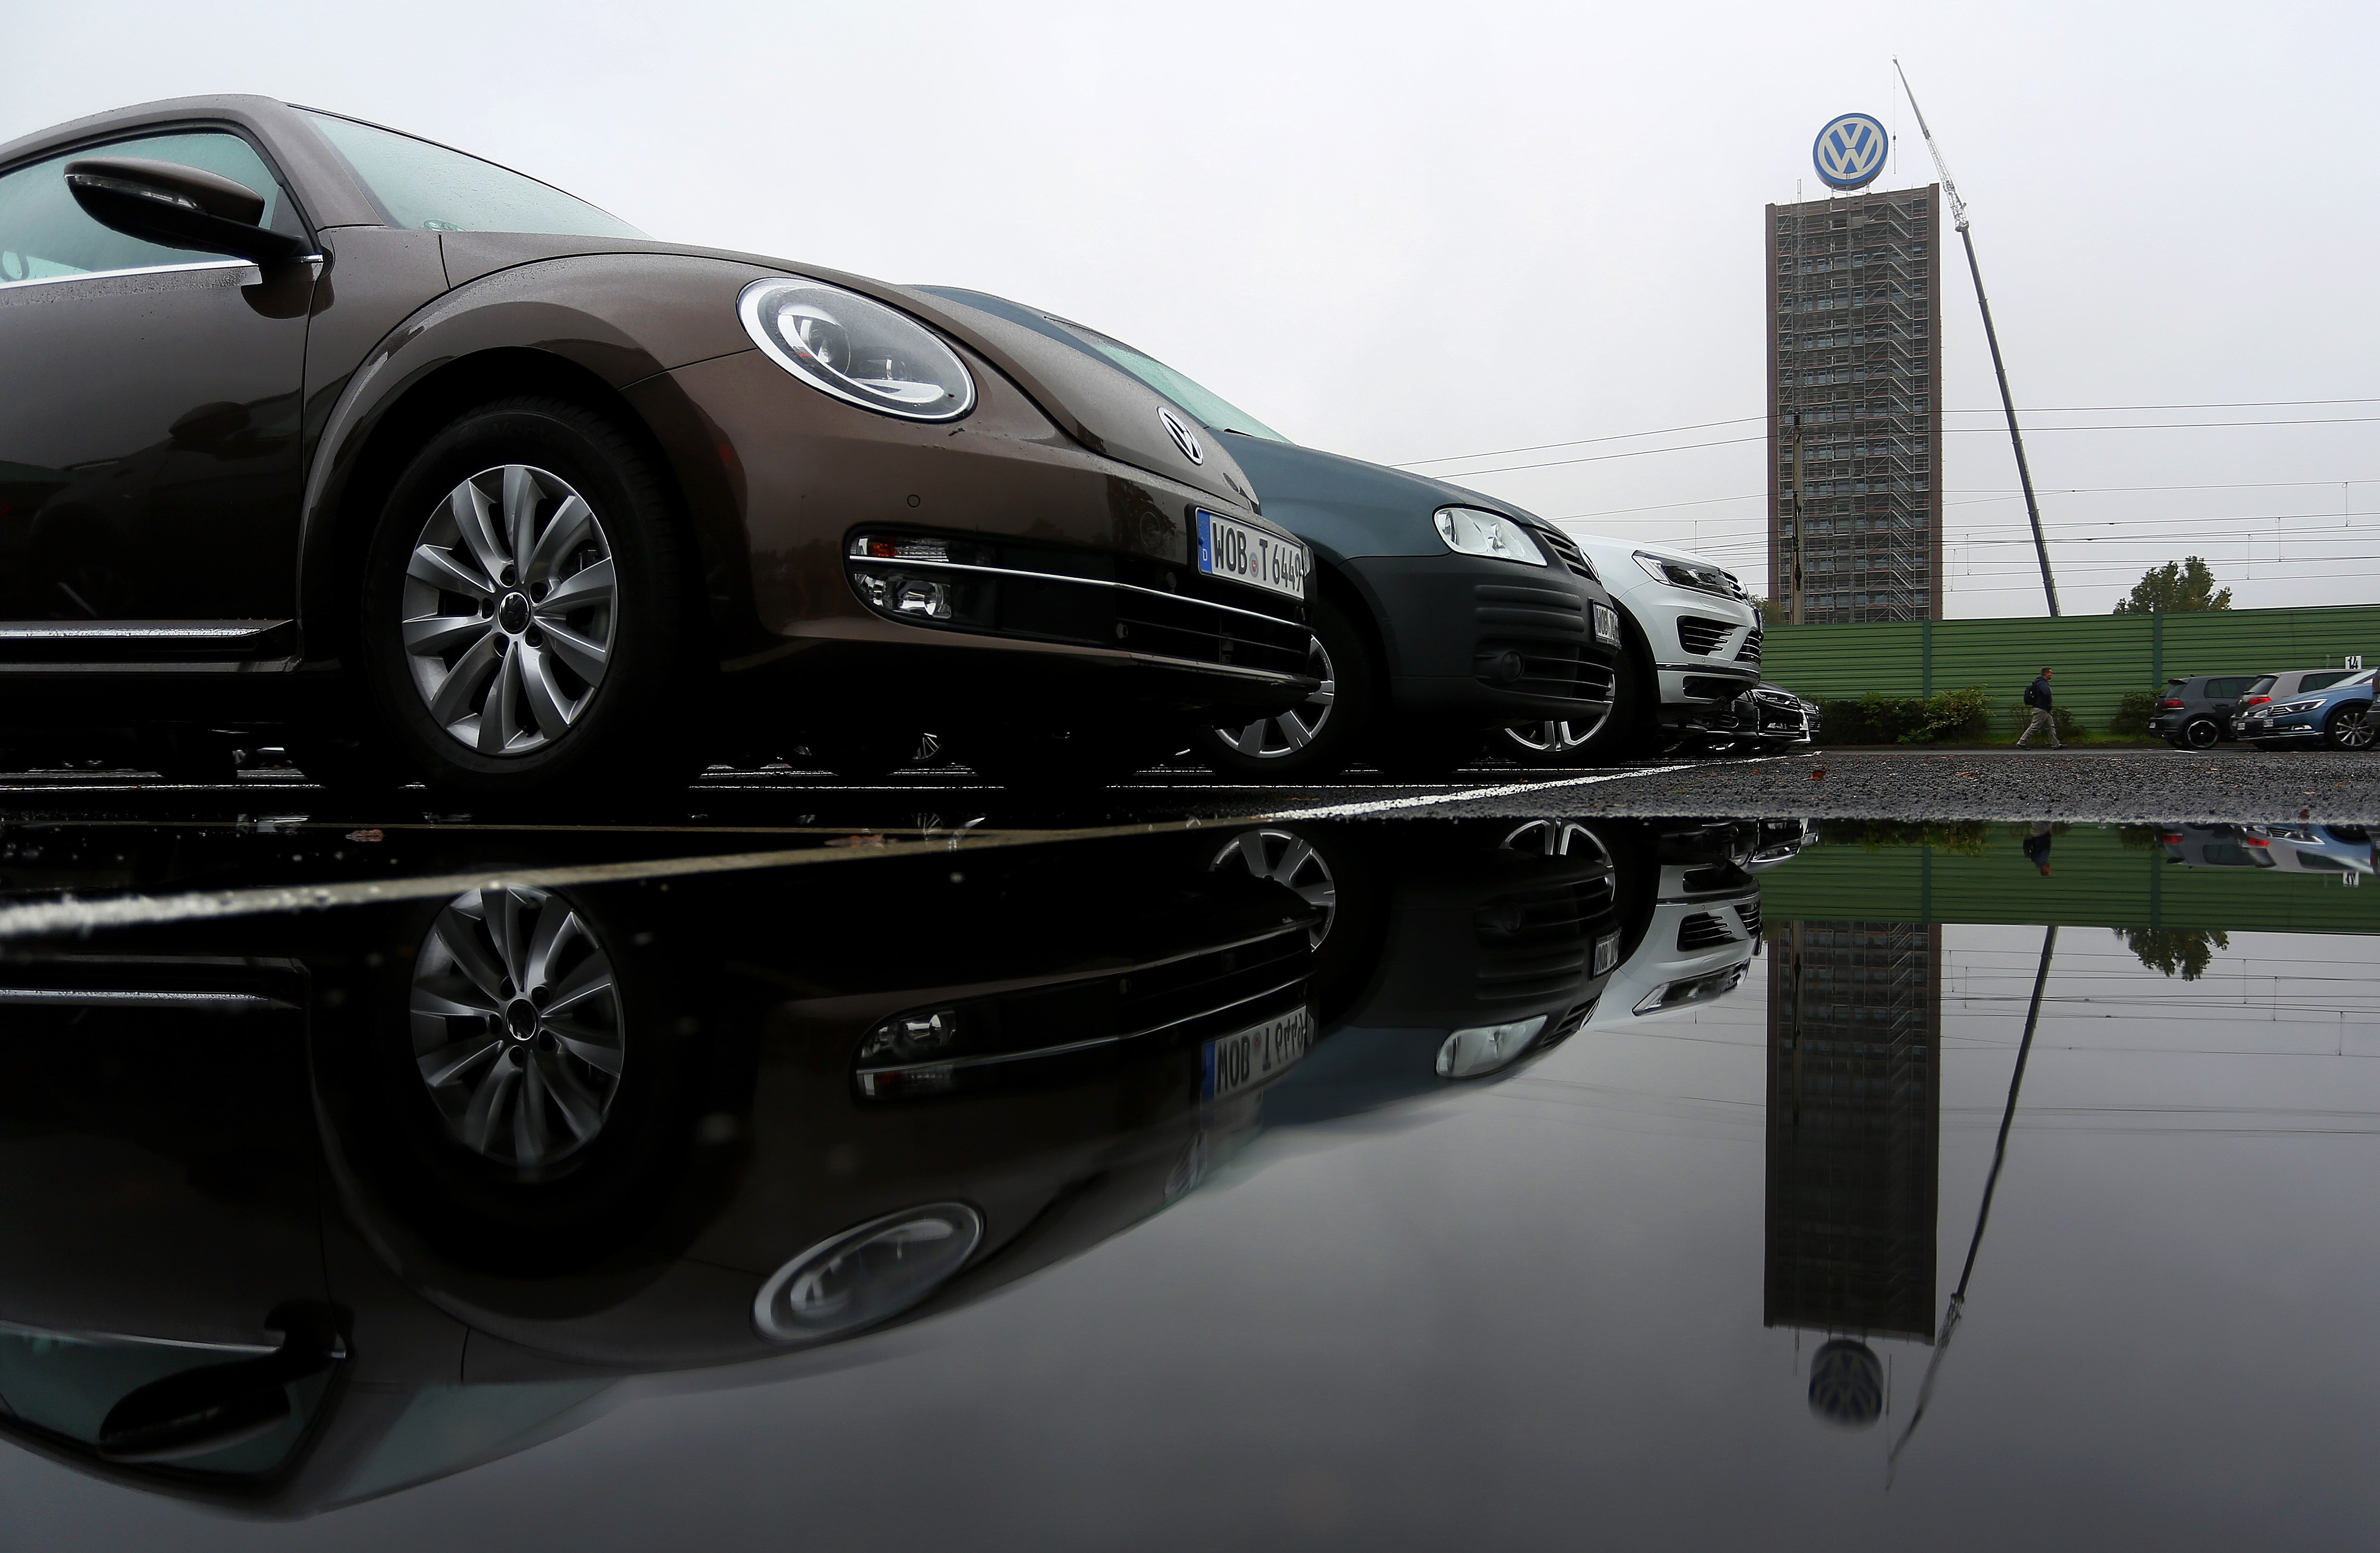 The logo of German carmaker Volkswagen and cars reflect on a rain puddle near the company's headquarters in Wolfsburg, central Germany, on Oct. 8, 2015